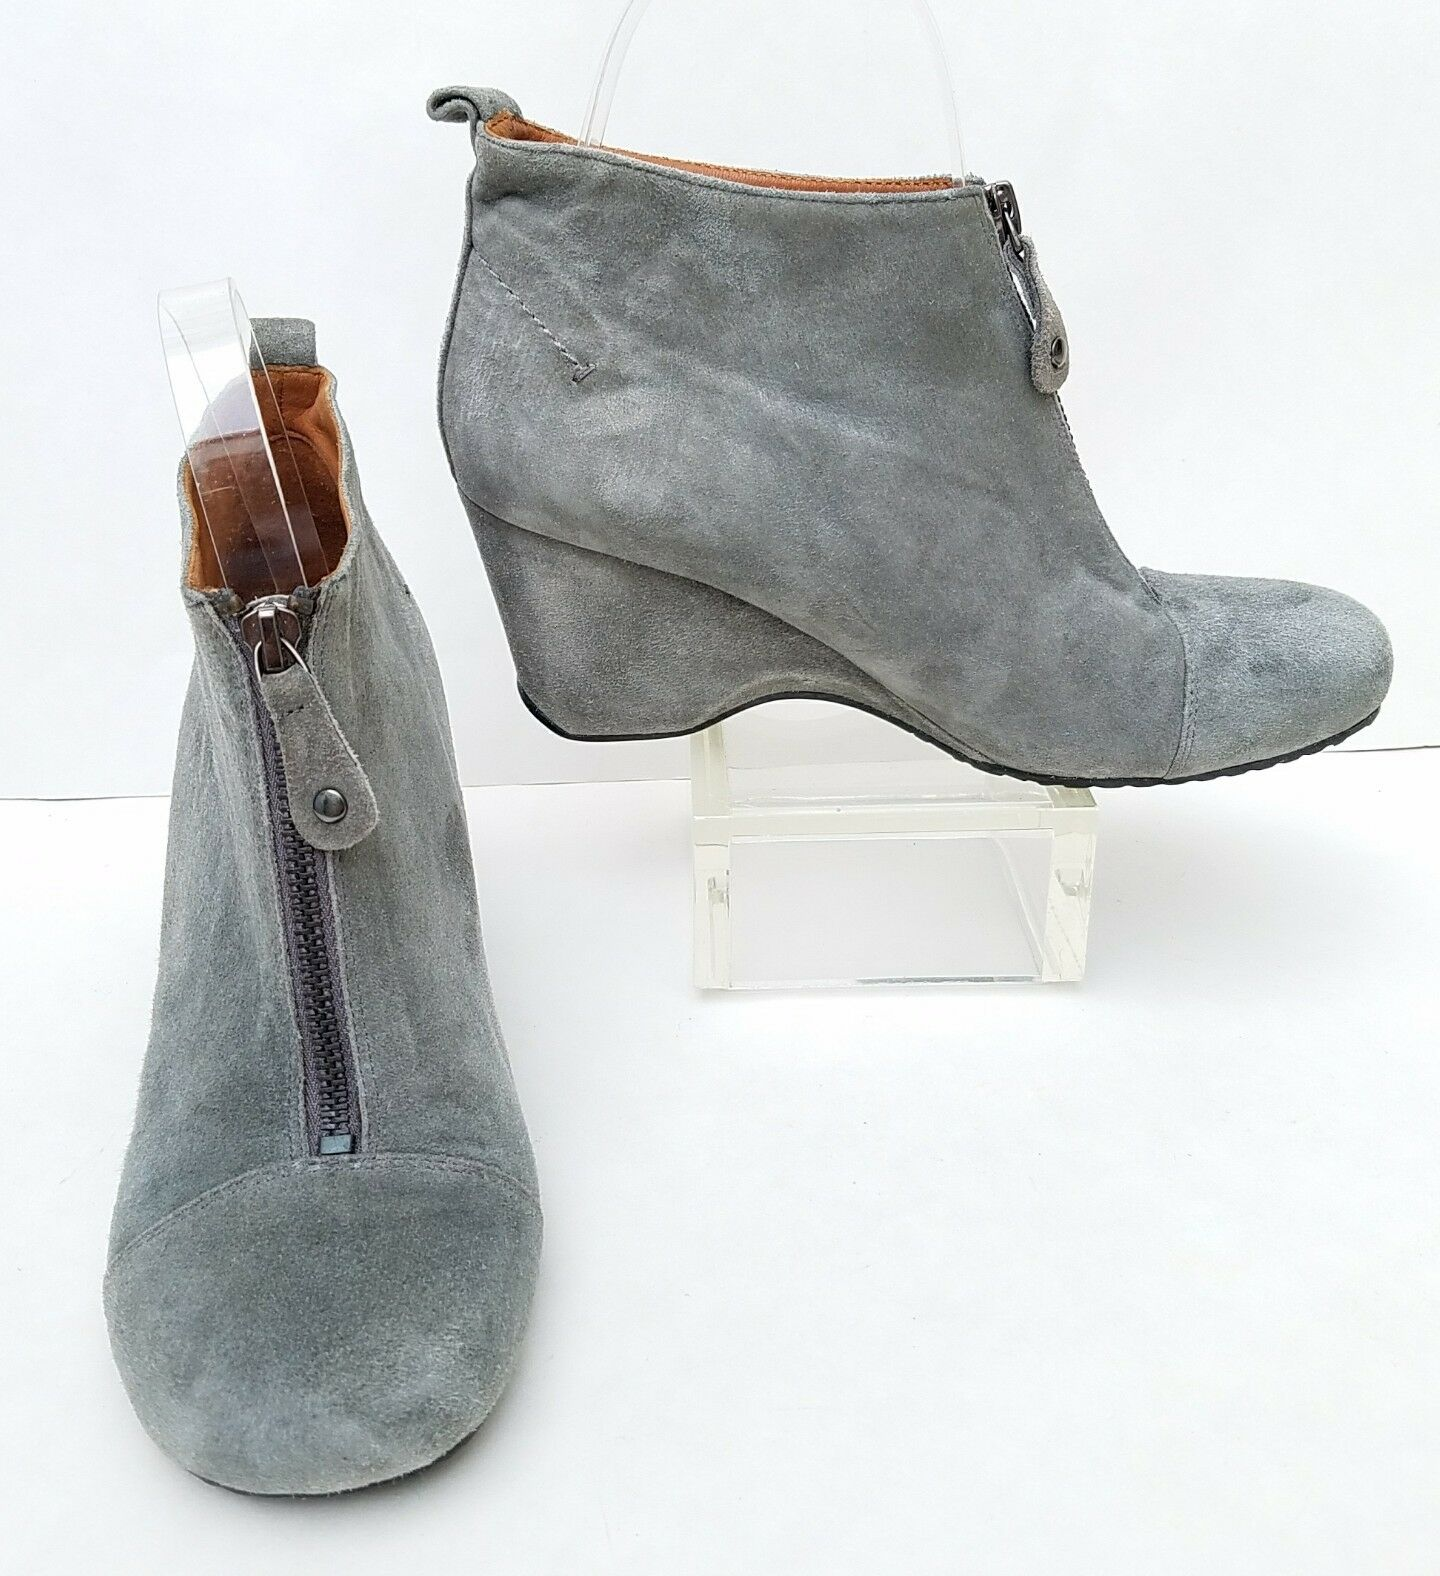 NEU Damenschuhe Sz 7 Gentle Souls 'Ridgual' GREY Leder Ankle Boot Bootie Wedge Zip